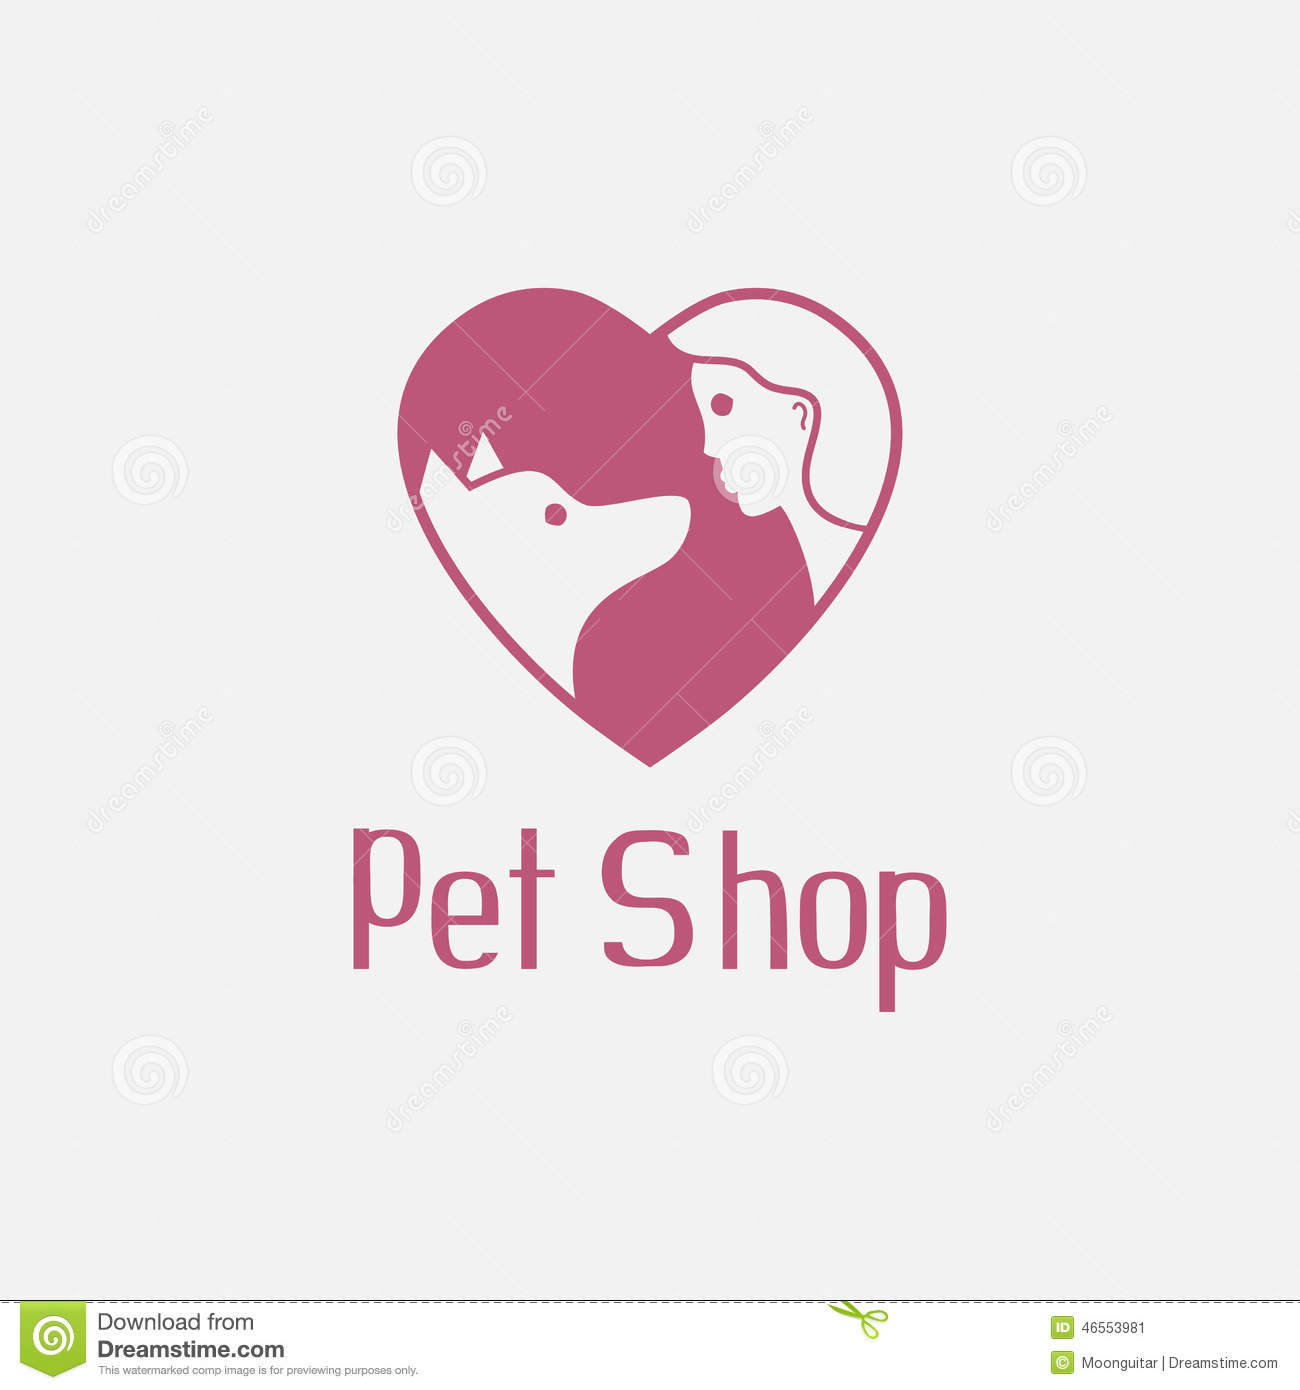 Flat pet shop logo with dog and man are best